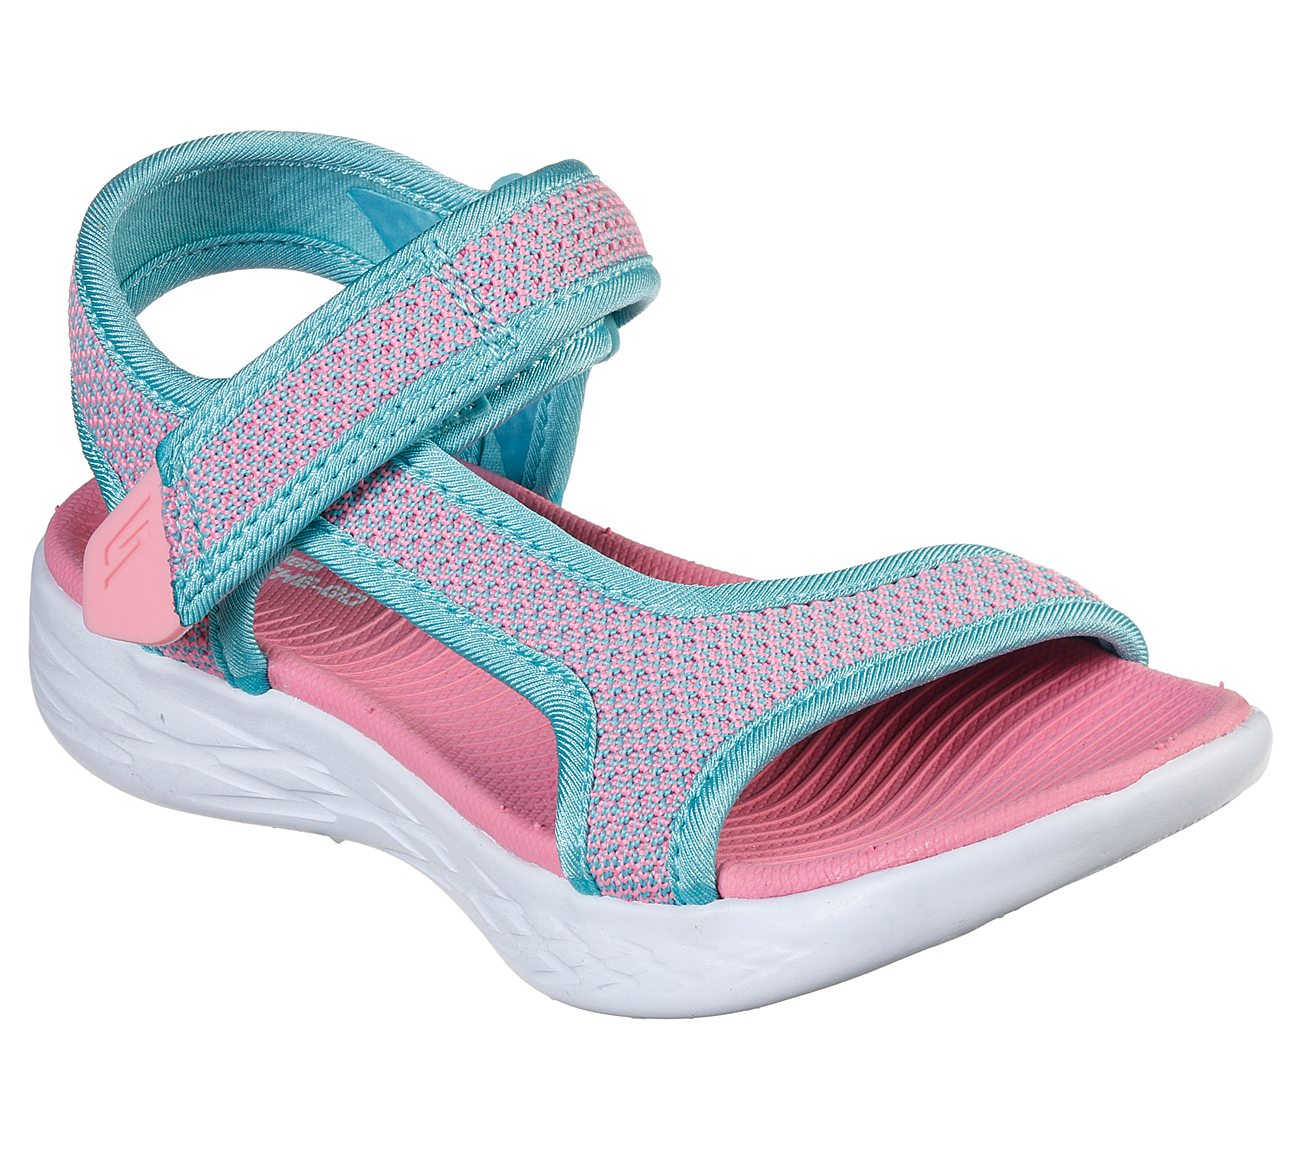 Skechers On the GO 600 - Crush Brights